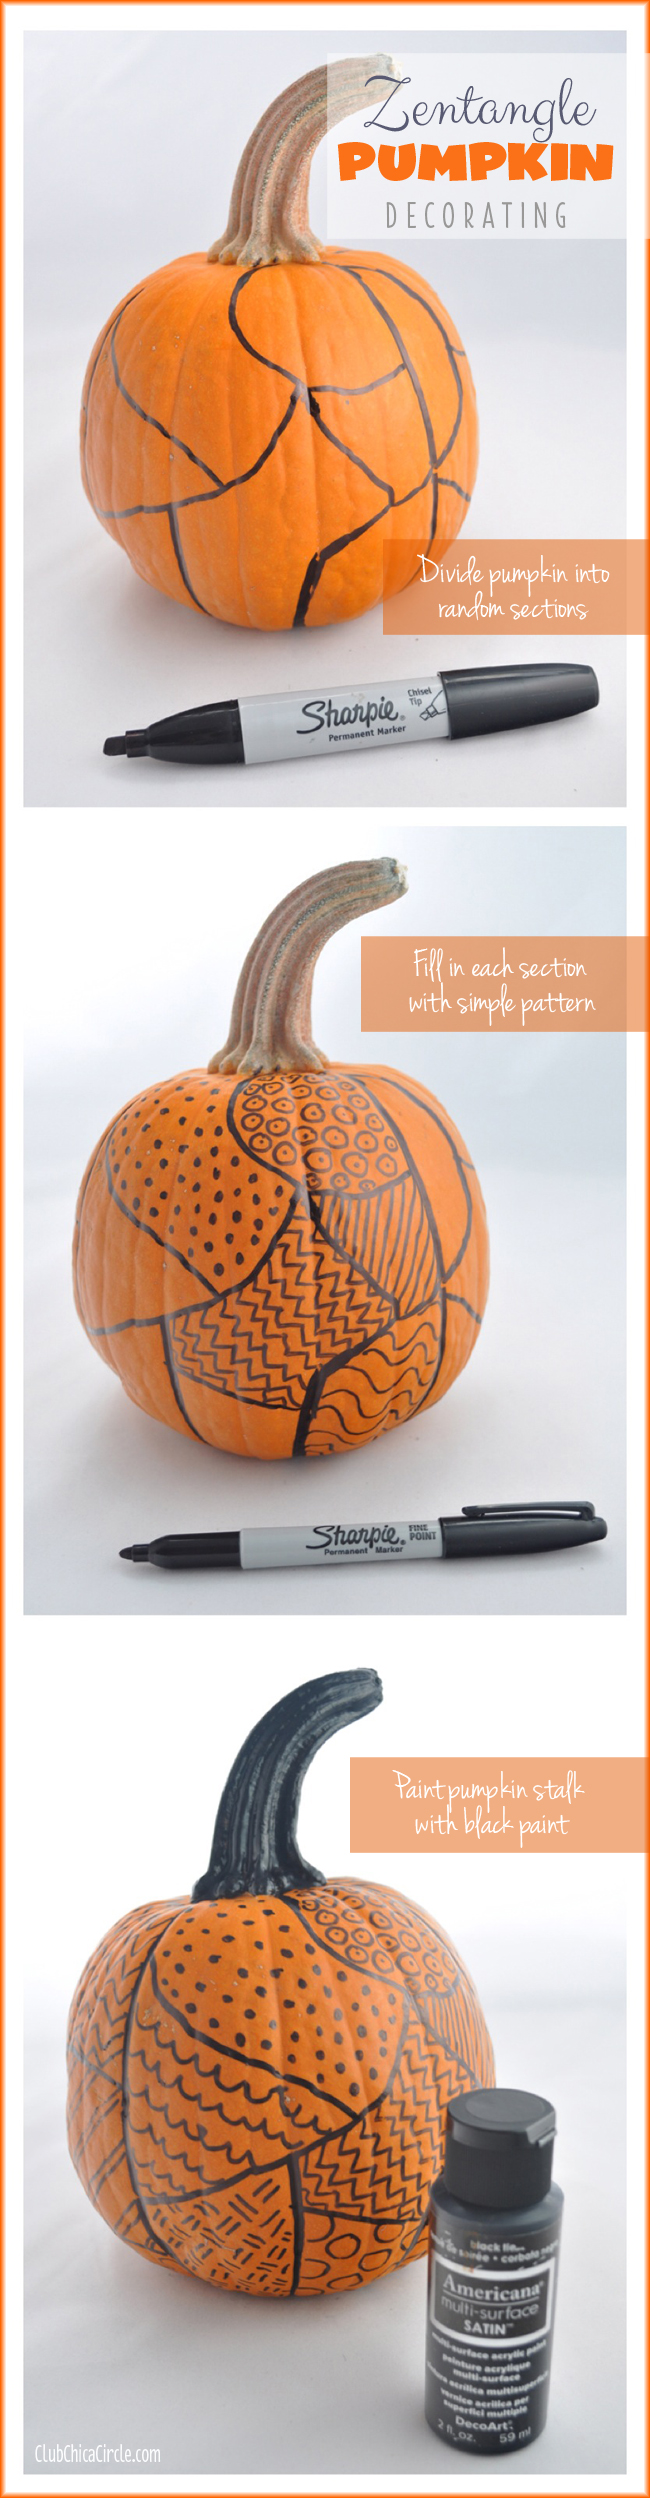 zentangle easy pumpkin decorating tutorial